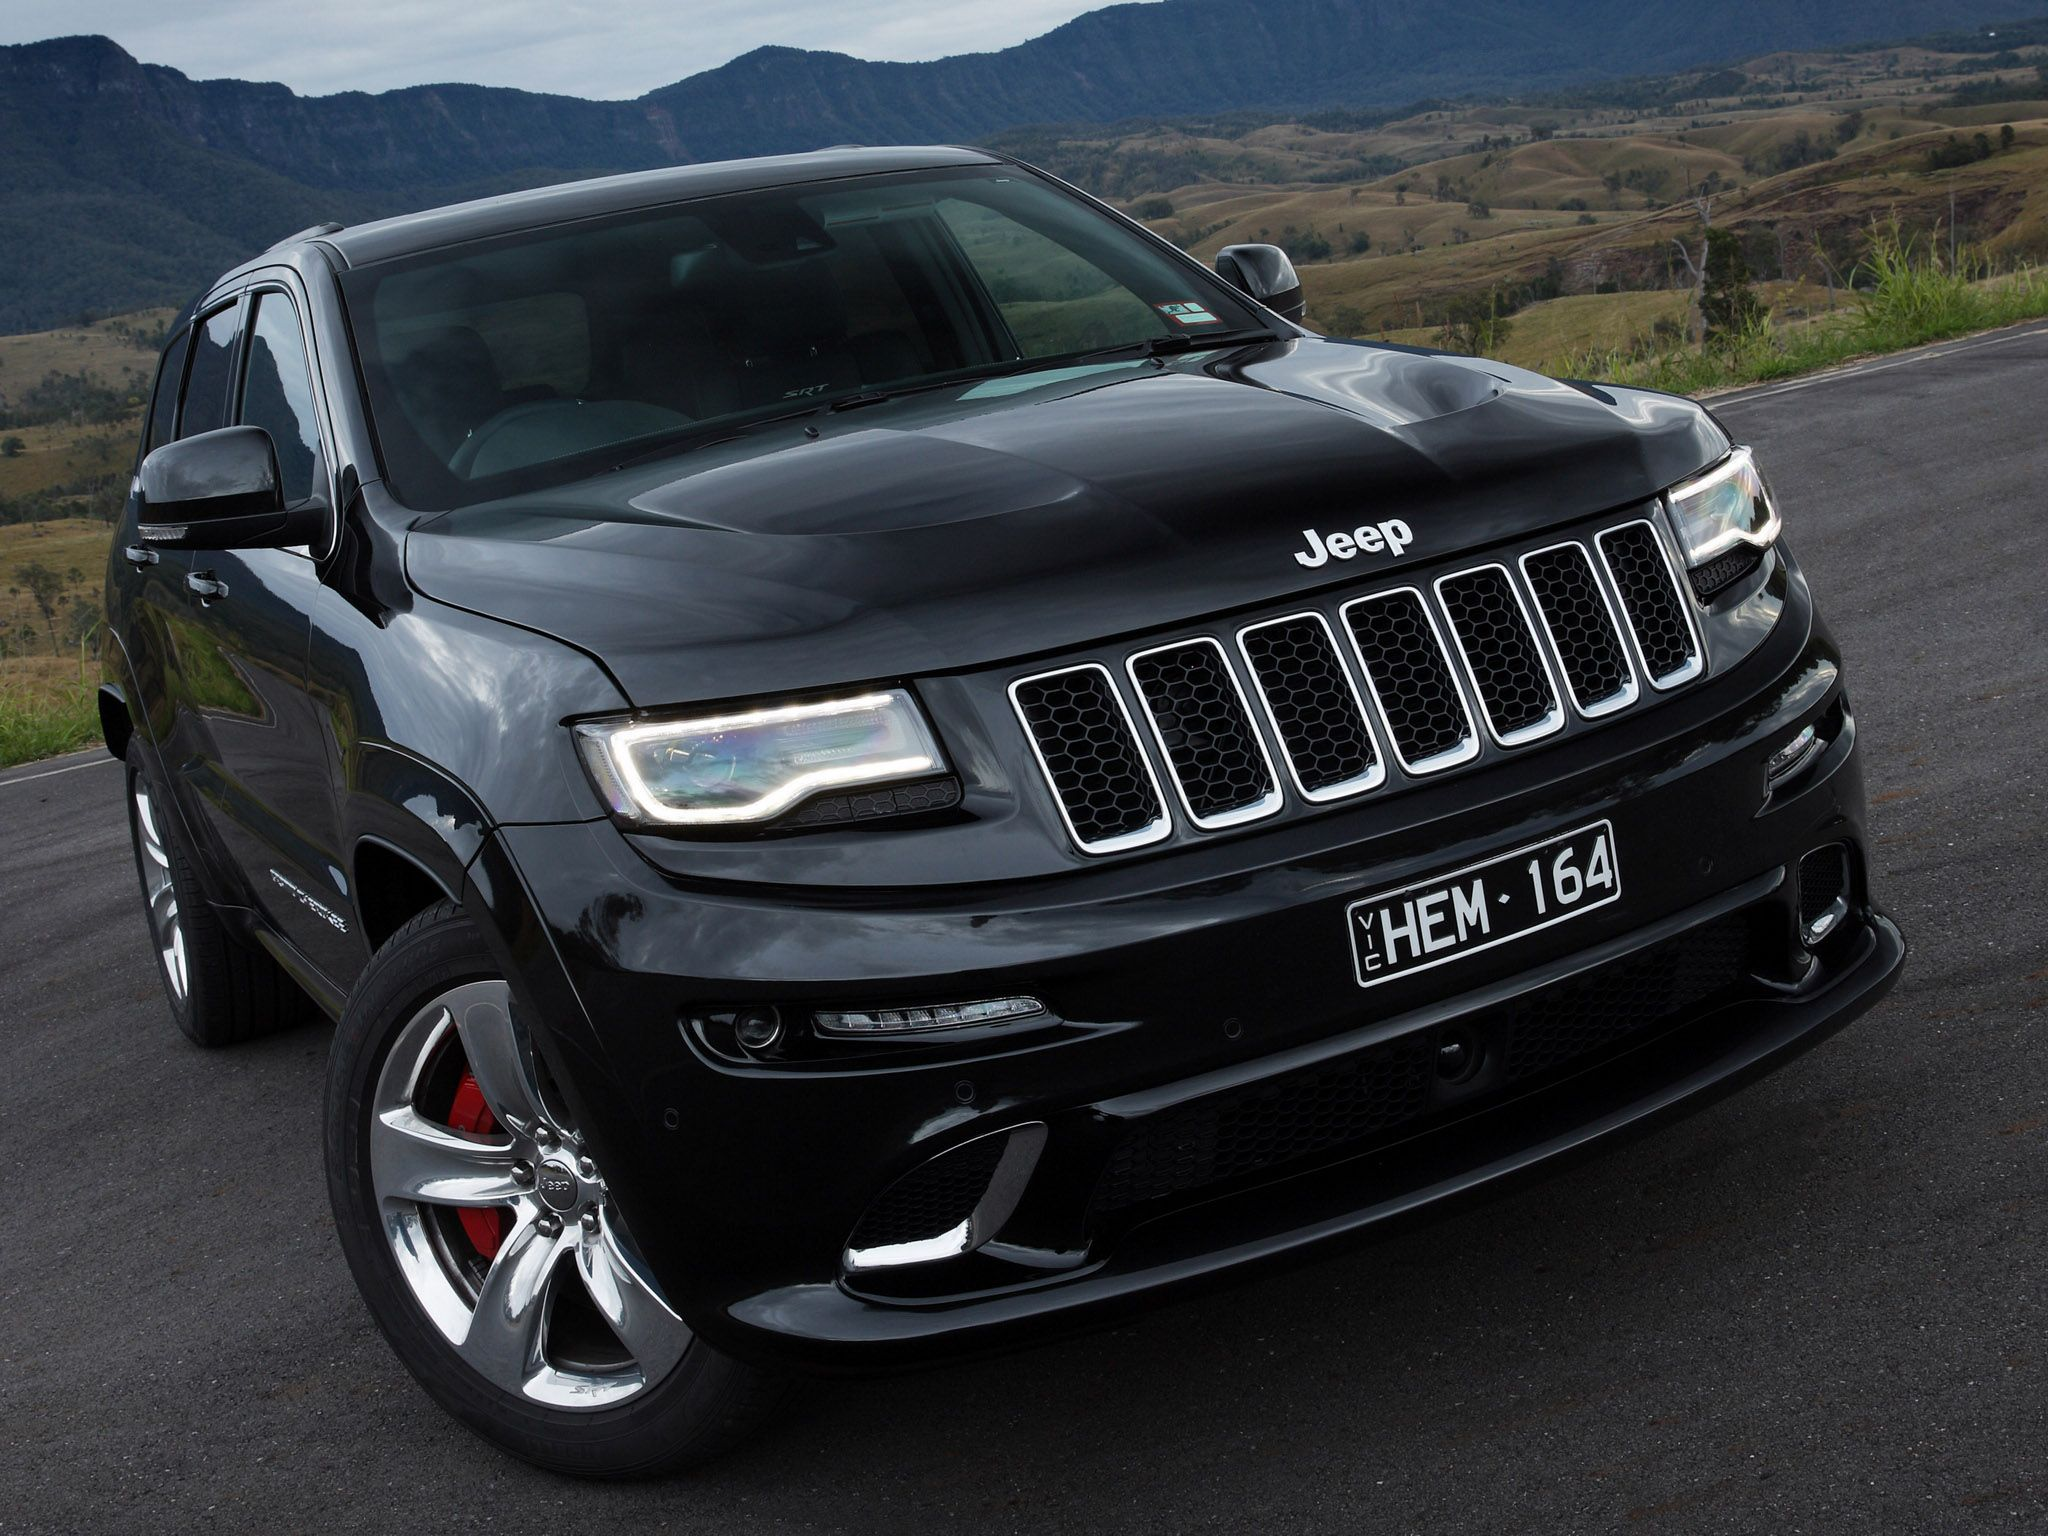 2014 jeep grand cherokee srt wk2 australia black car jeep grand cherokee wk 2005 on. Black Bedroom Furniture Sets. Home Design Ideas